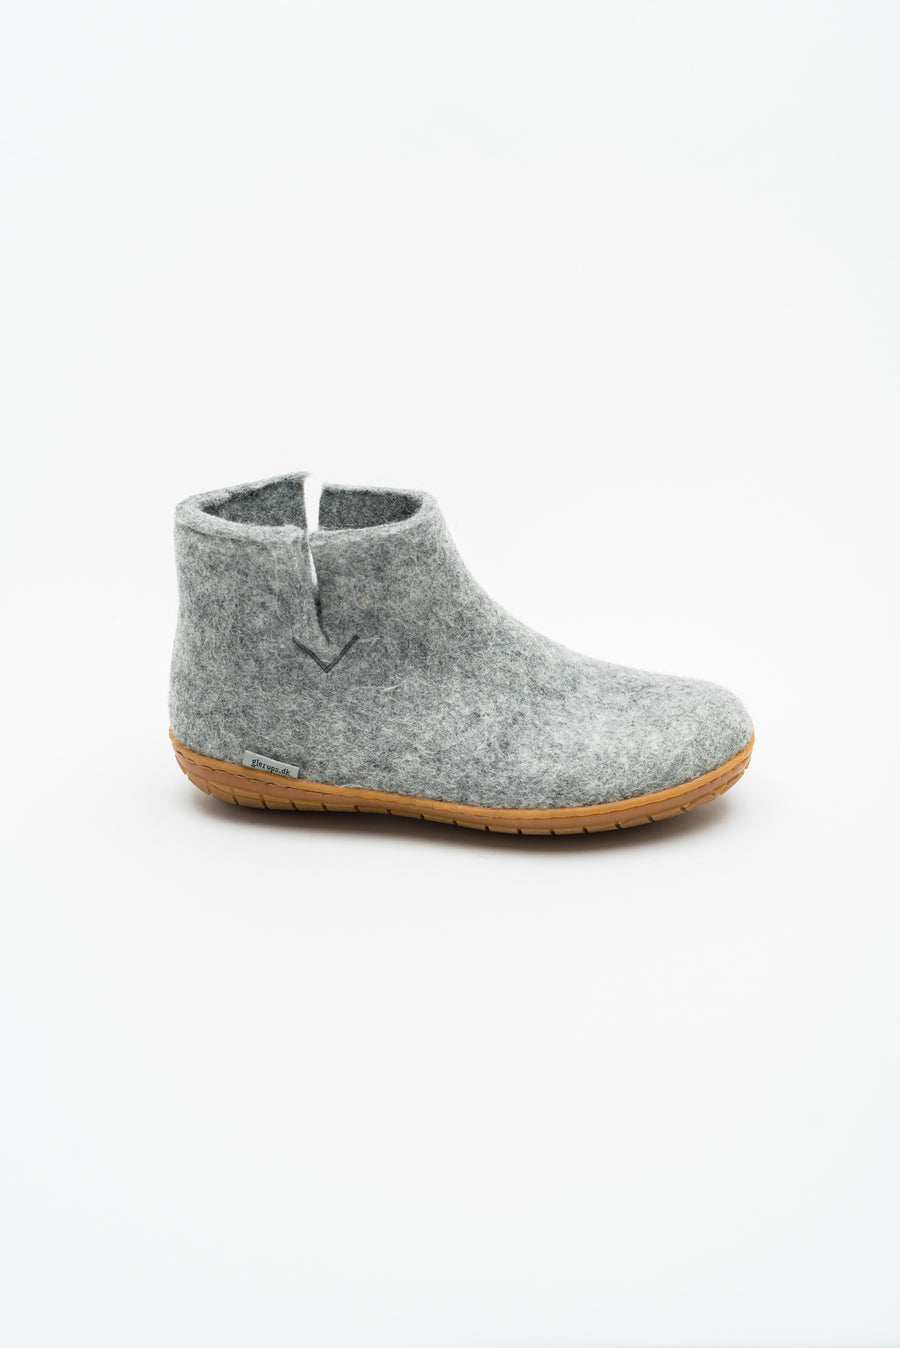 Low Boot with Rubber Sole - Grey